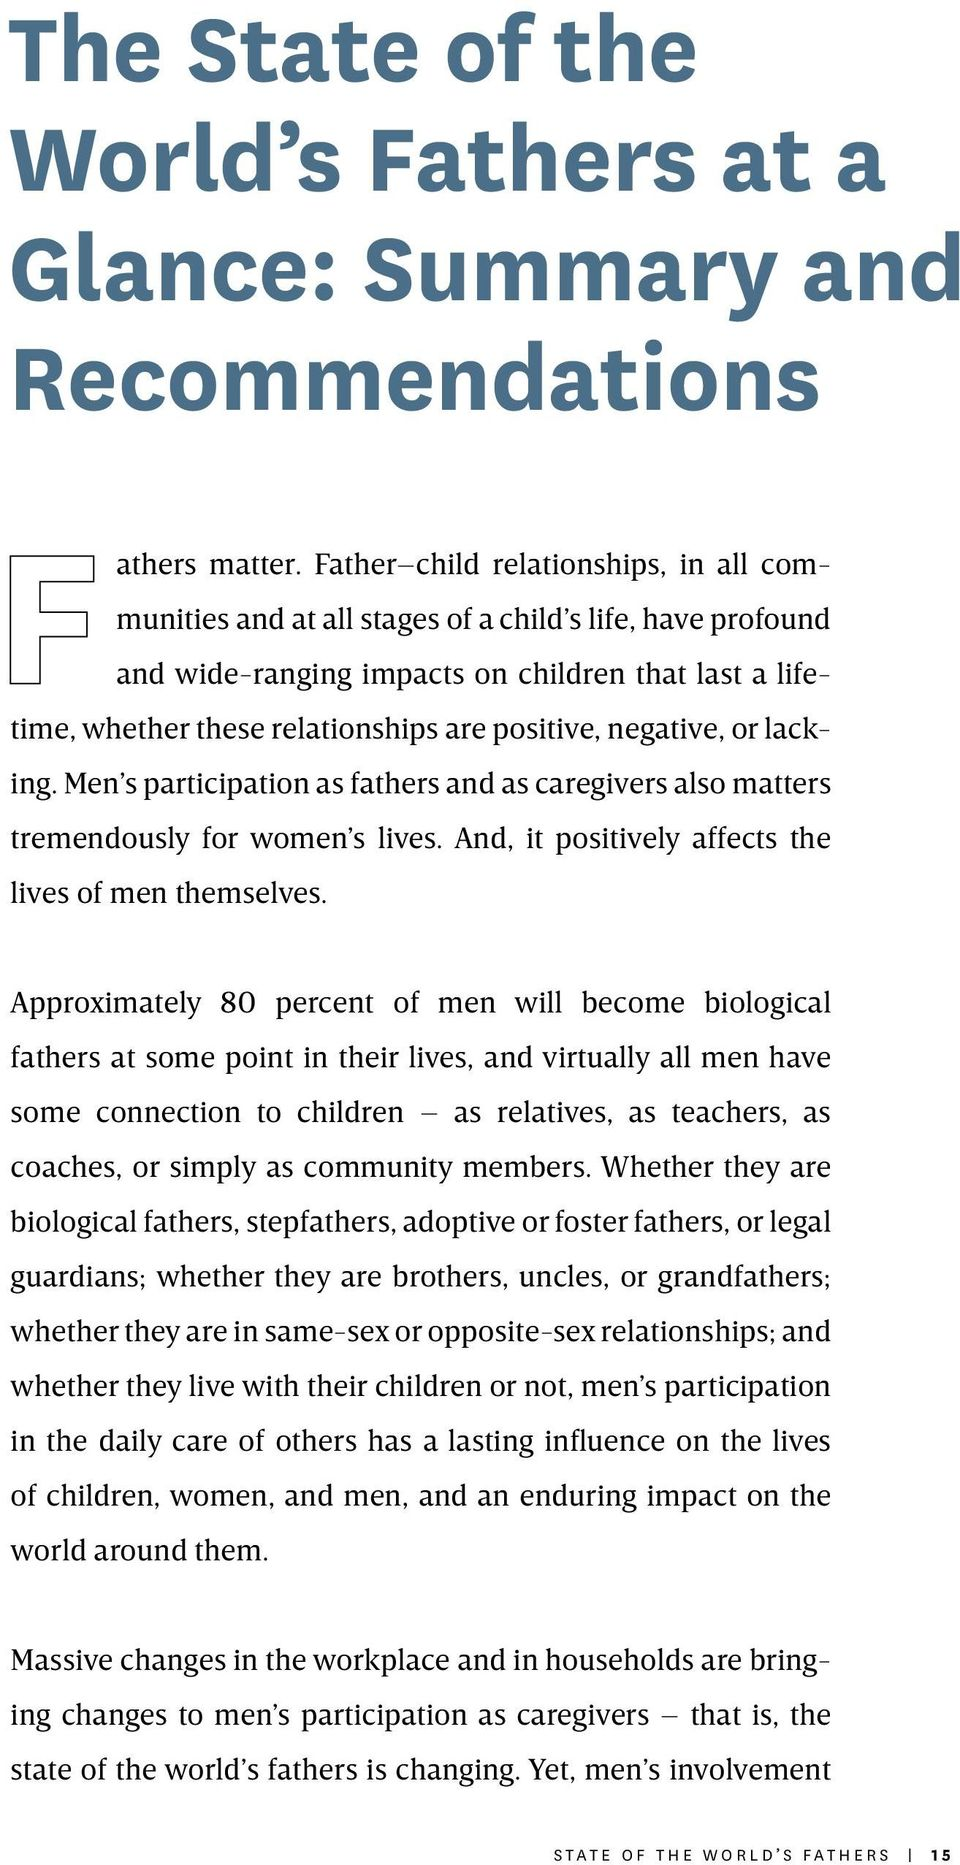 negative, or lacking. Men s participation as fathers and as caregivers also matters tremendously for women s lives. And, it positively affects the lives of men themselves.